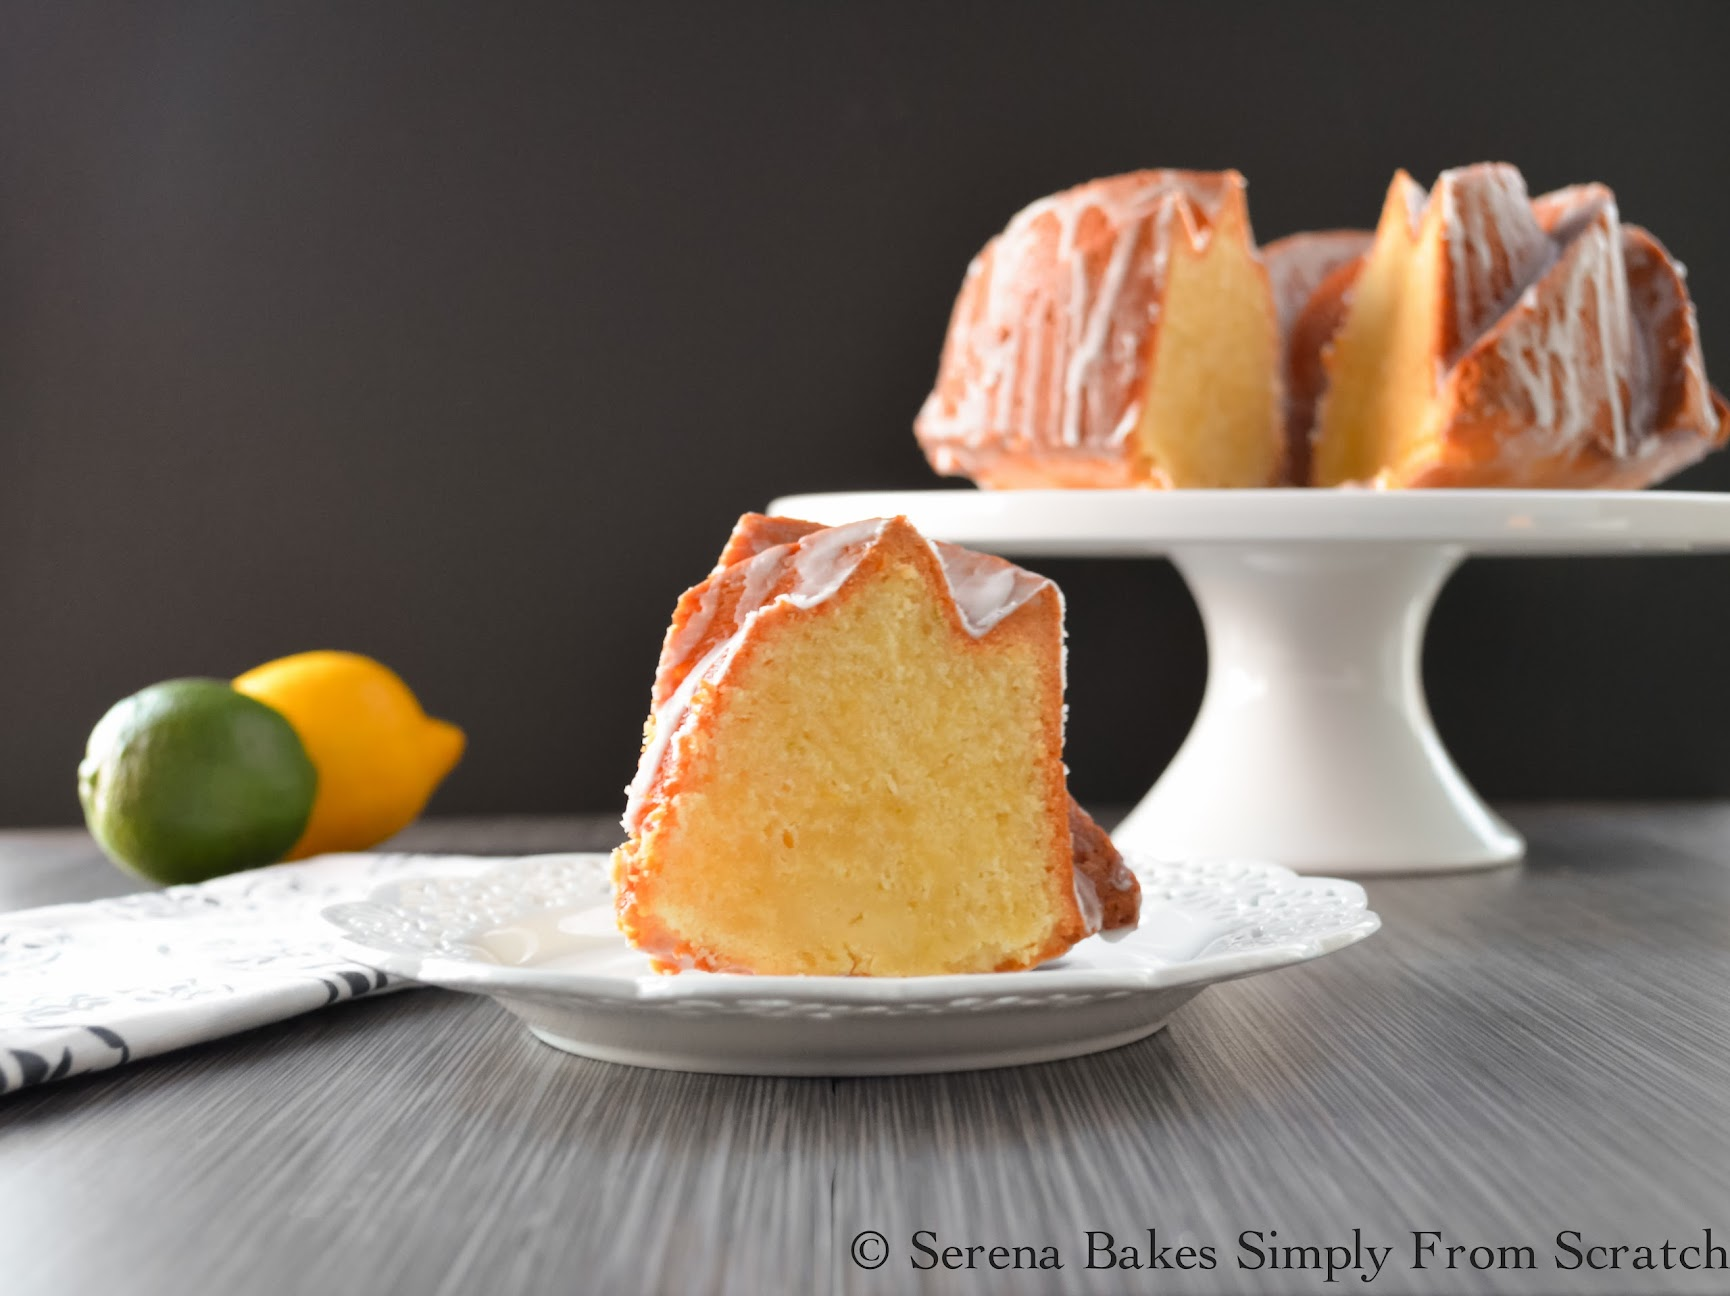 Lemon Lime Pound Cake made with 7 up.